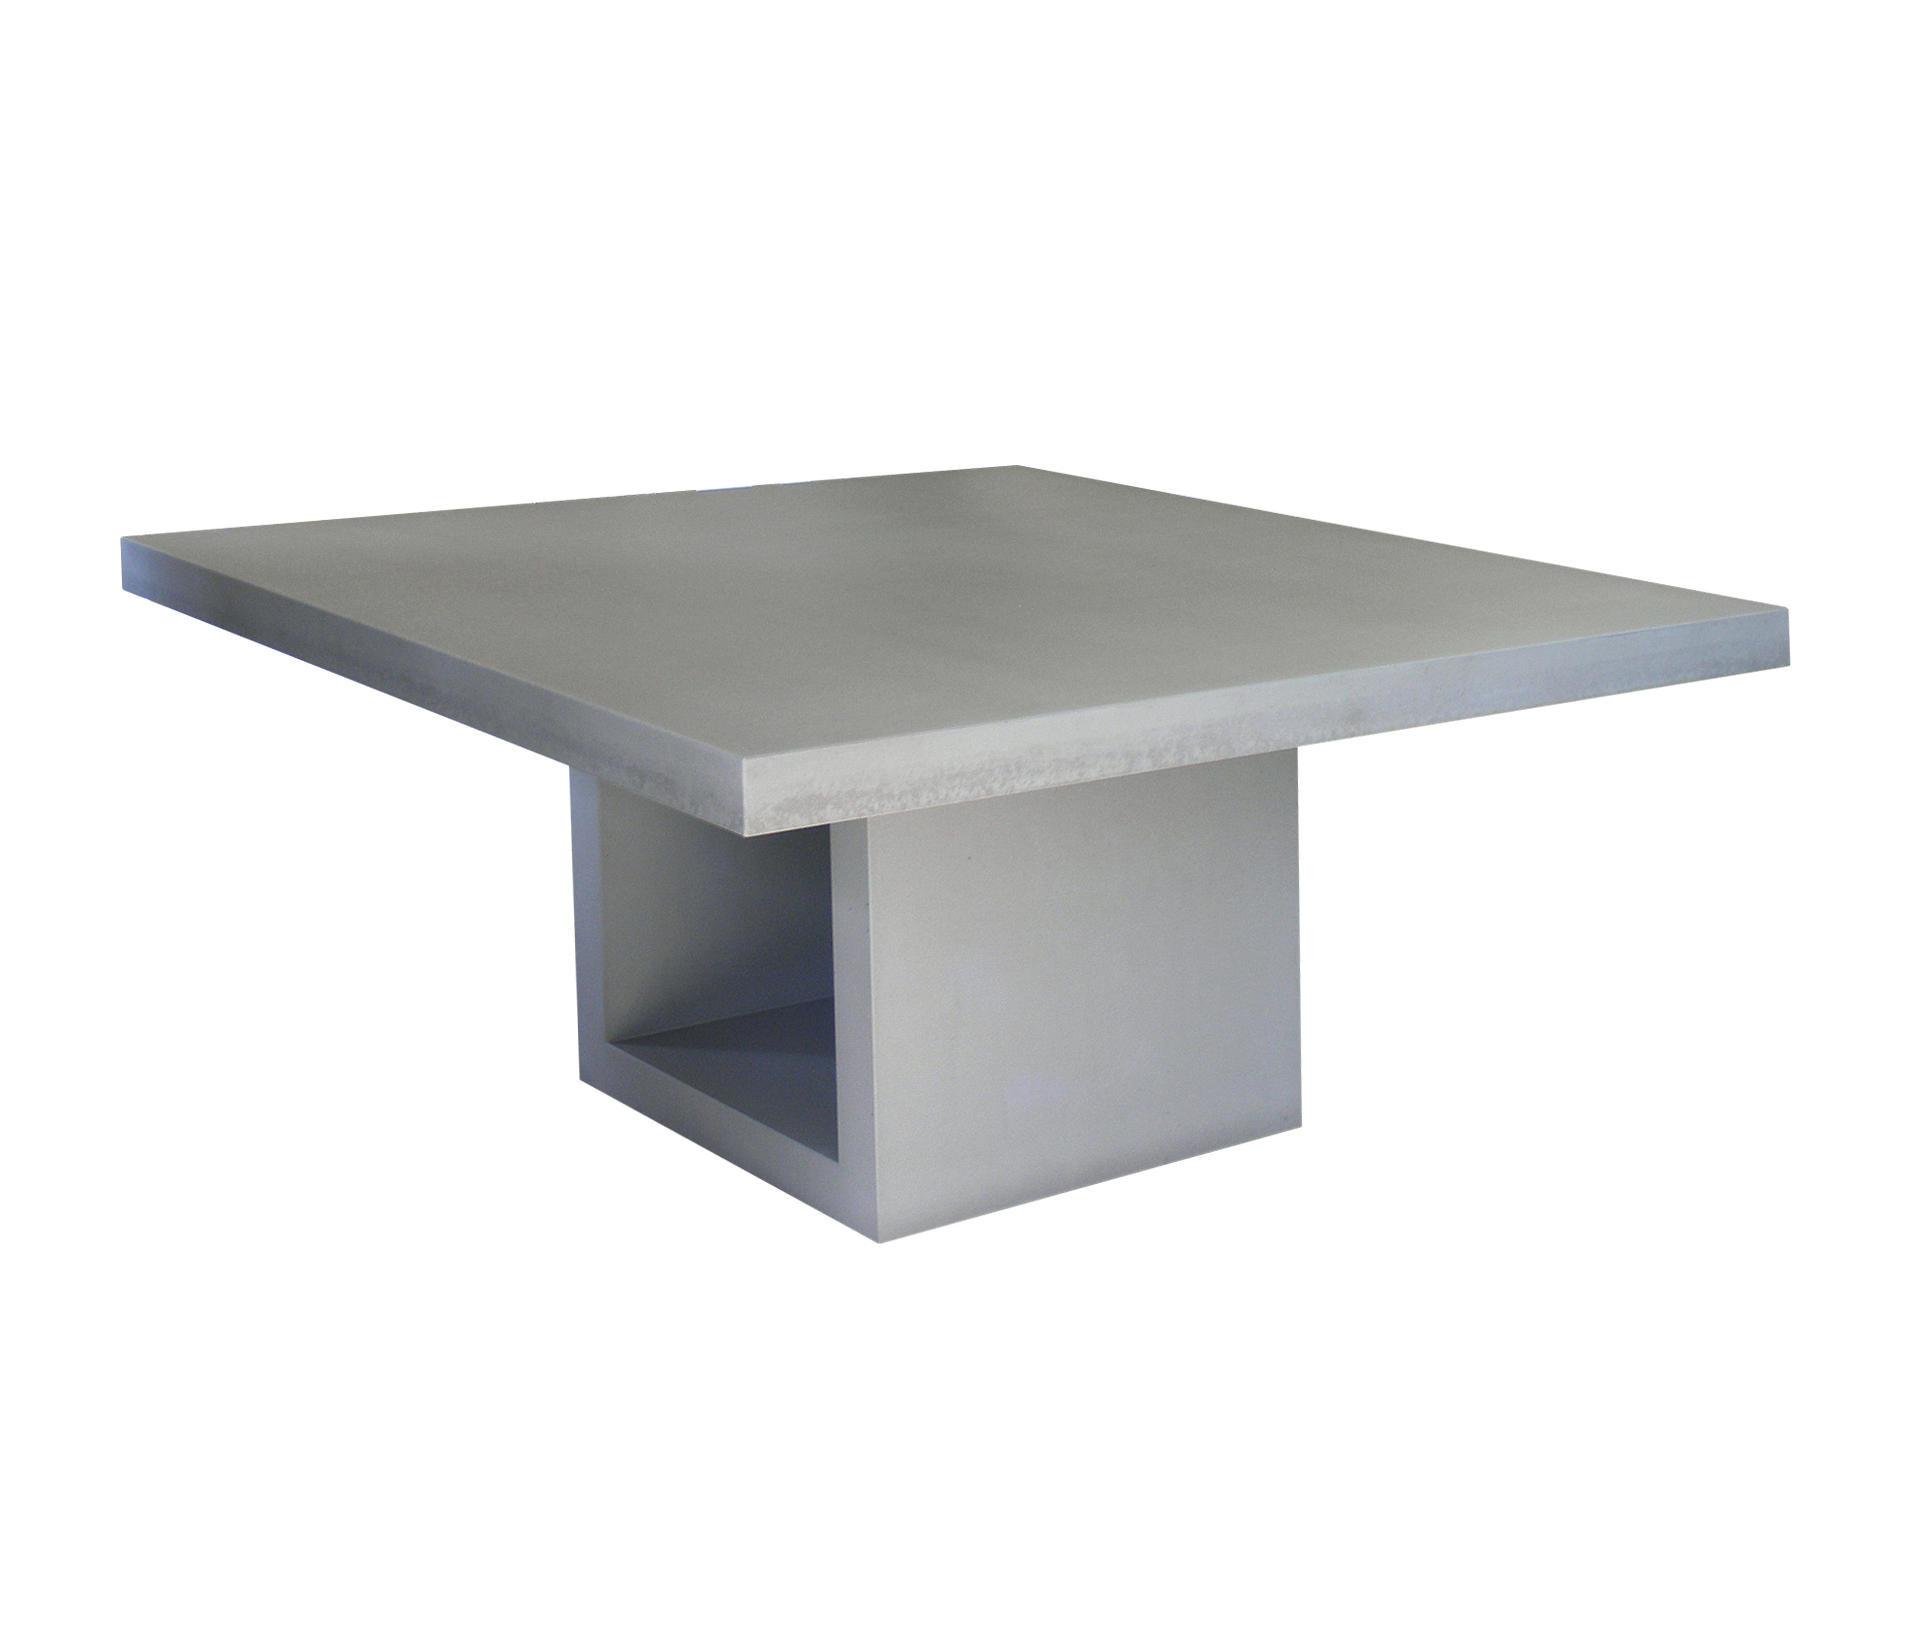 Concrete Table Coffee Tables From Oggi Beton Architonic